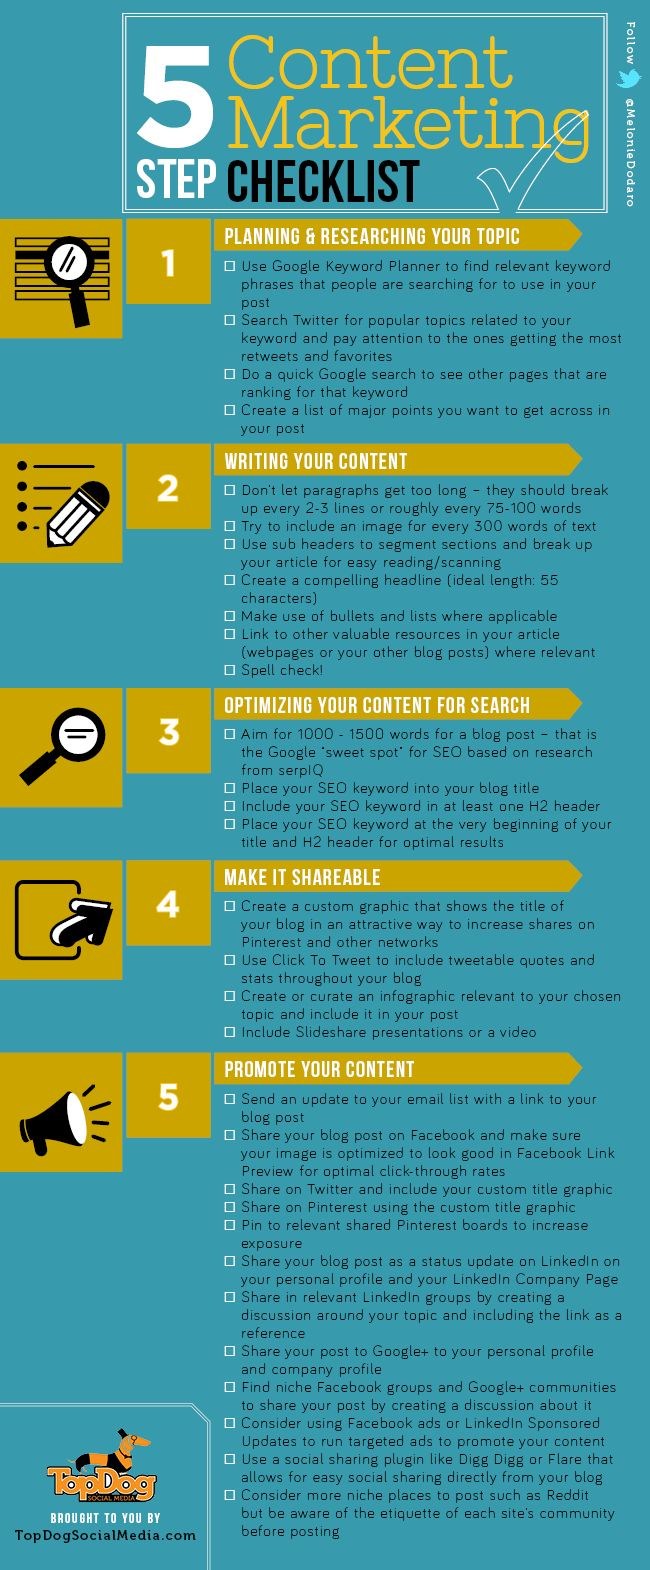 What Are 5 Steps For A Useful Content Marketing Checklist When Creating And Promoting Content? #infographic